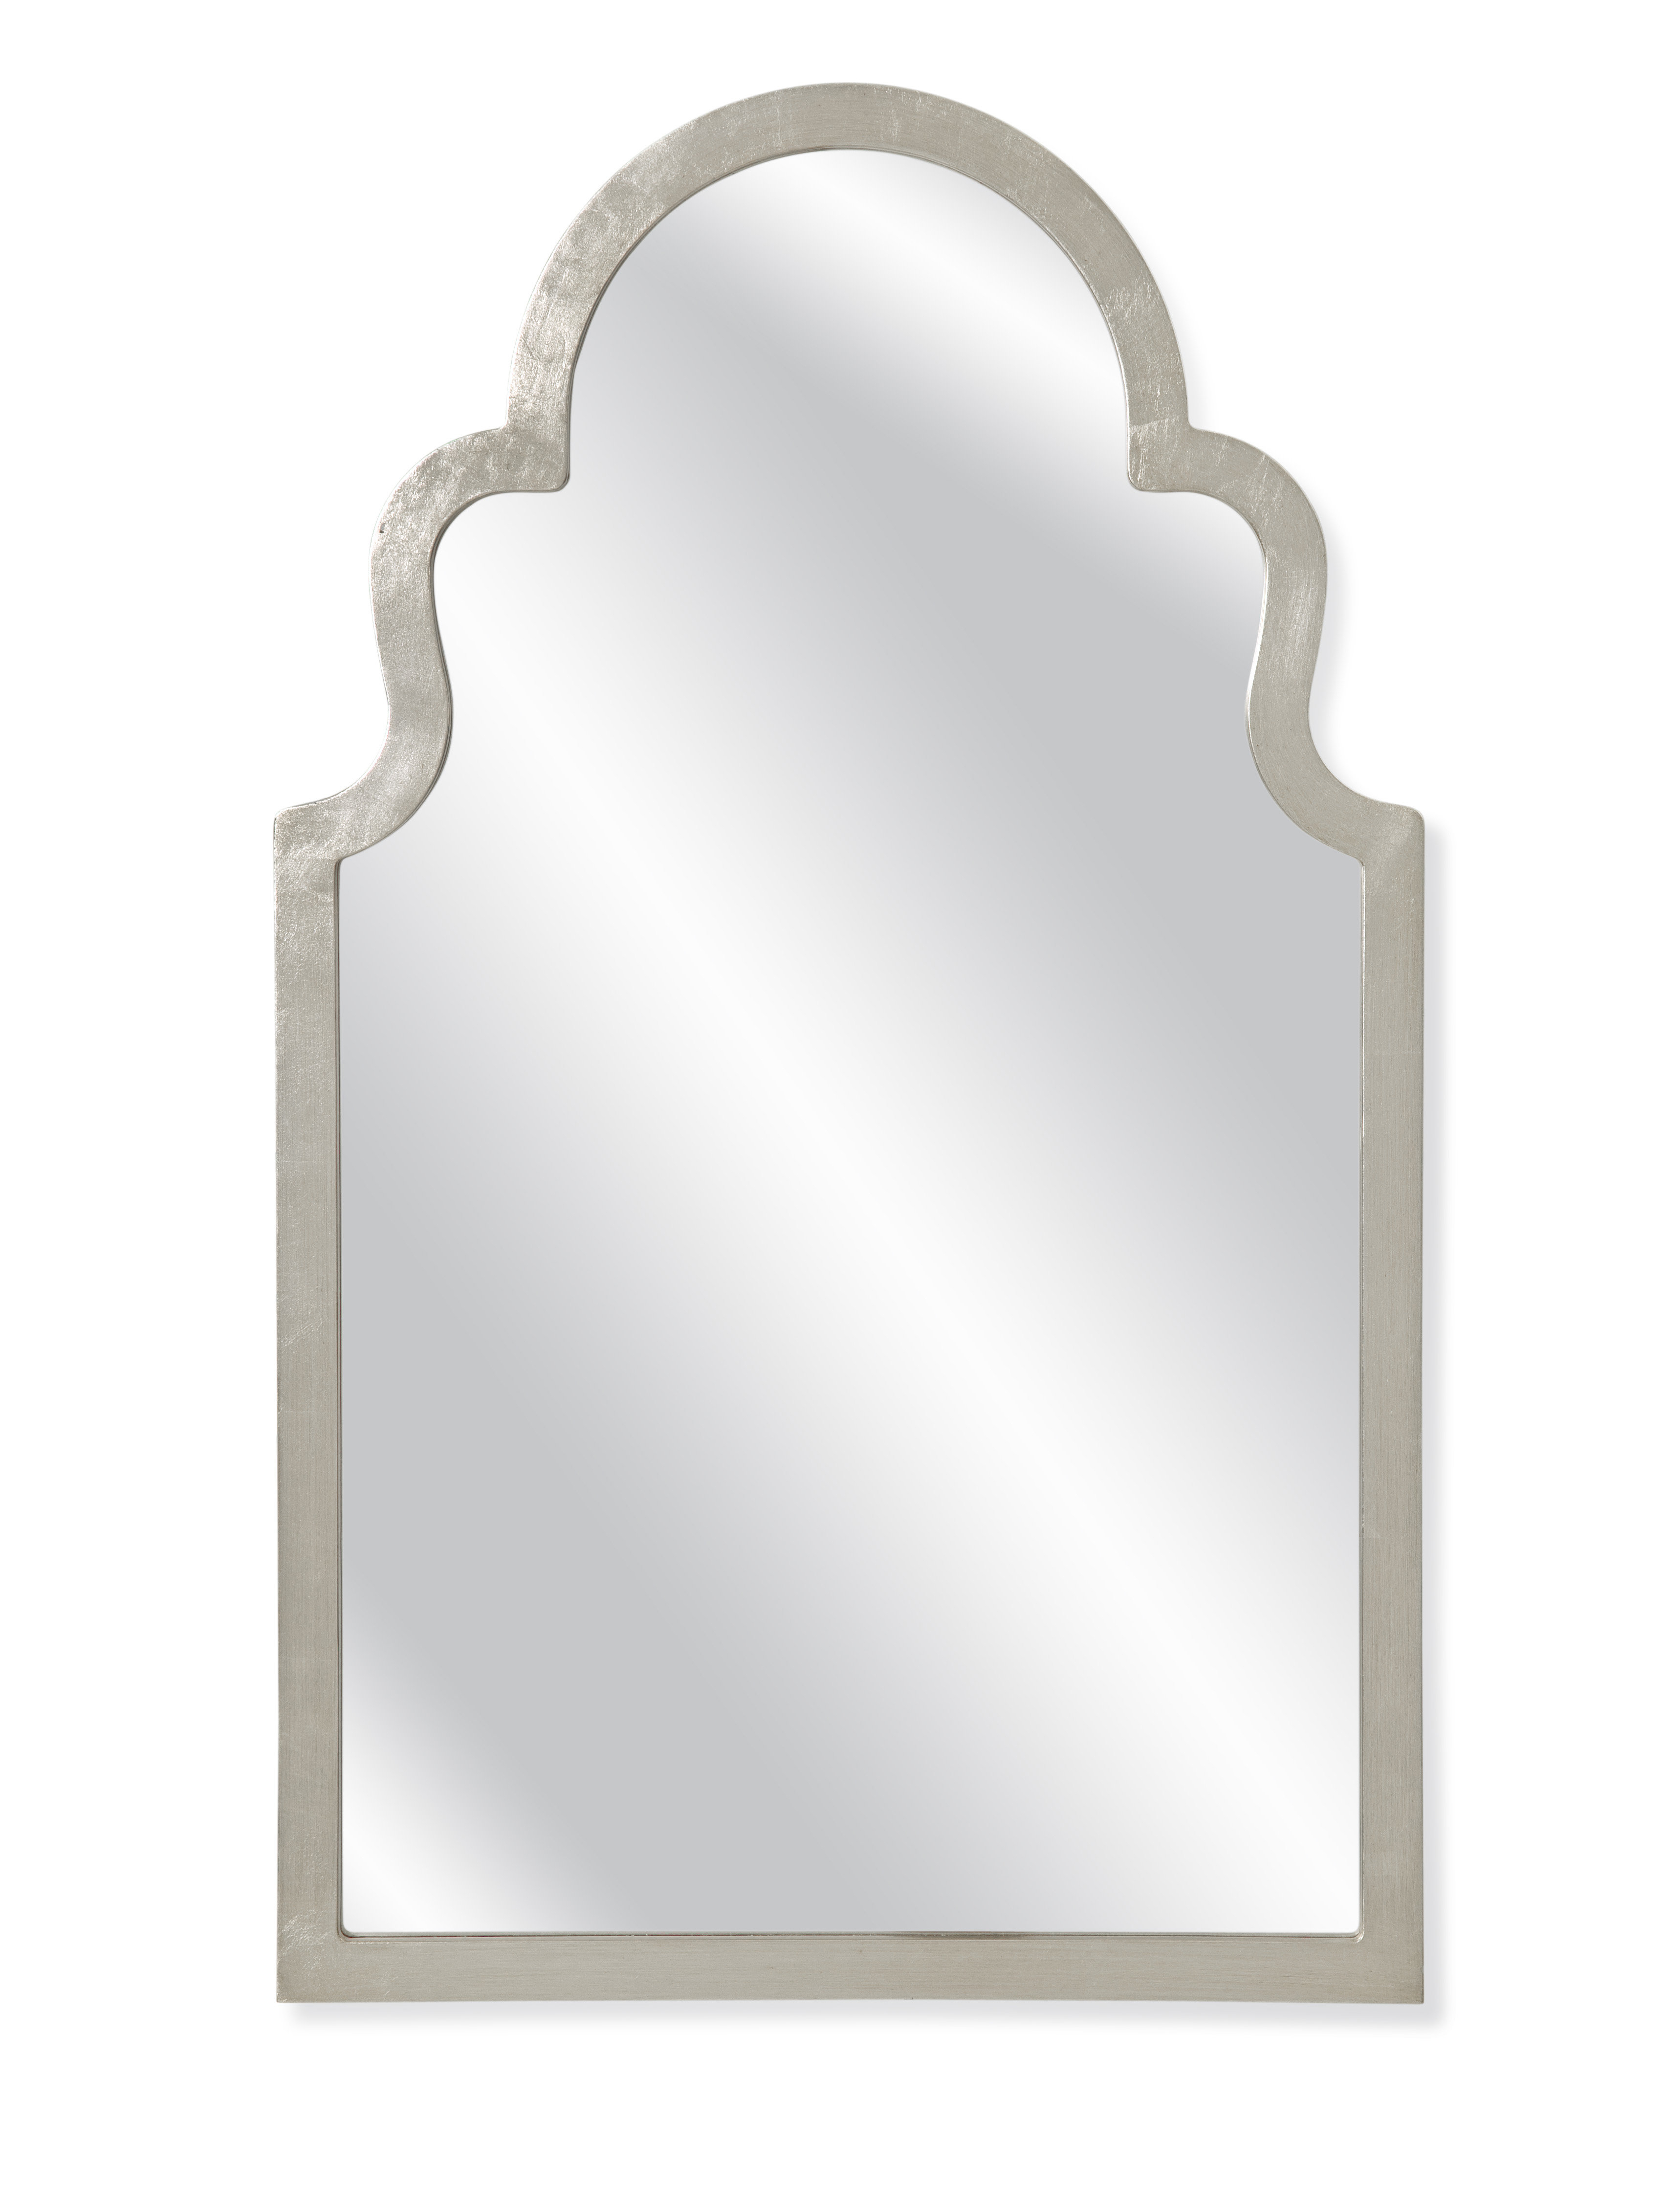 Trendy Arch Top Vertical Wall Mirror Intended For Dariel Tall Arched Scalloped Wall Mirrors (View 5 of 20)